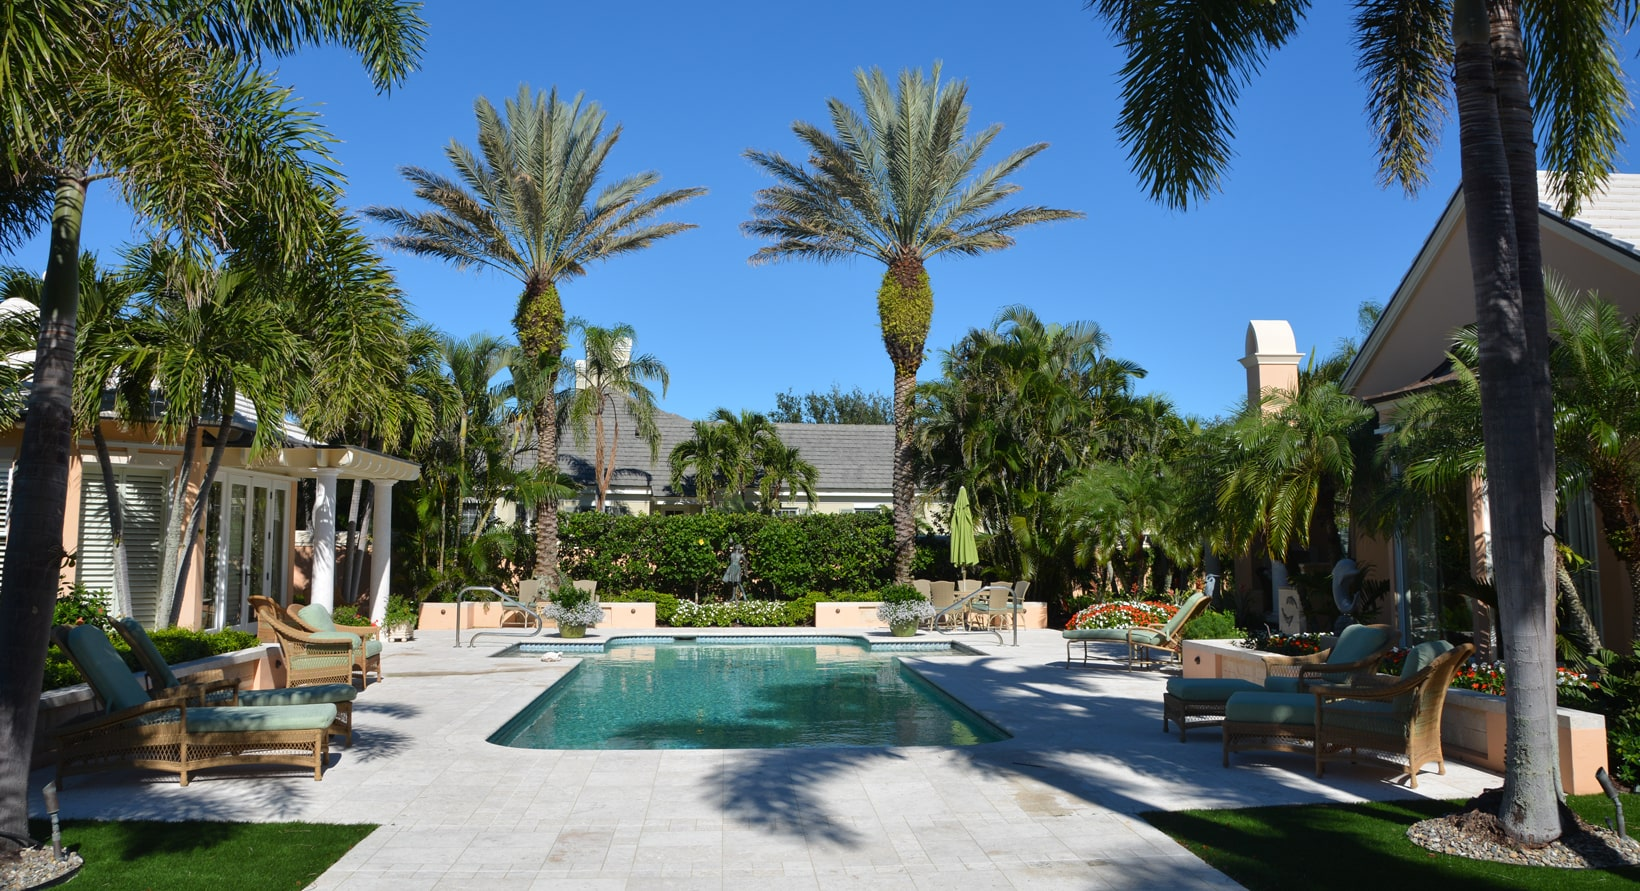 aiello-landscape_vero-beach-pool-landscaping